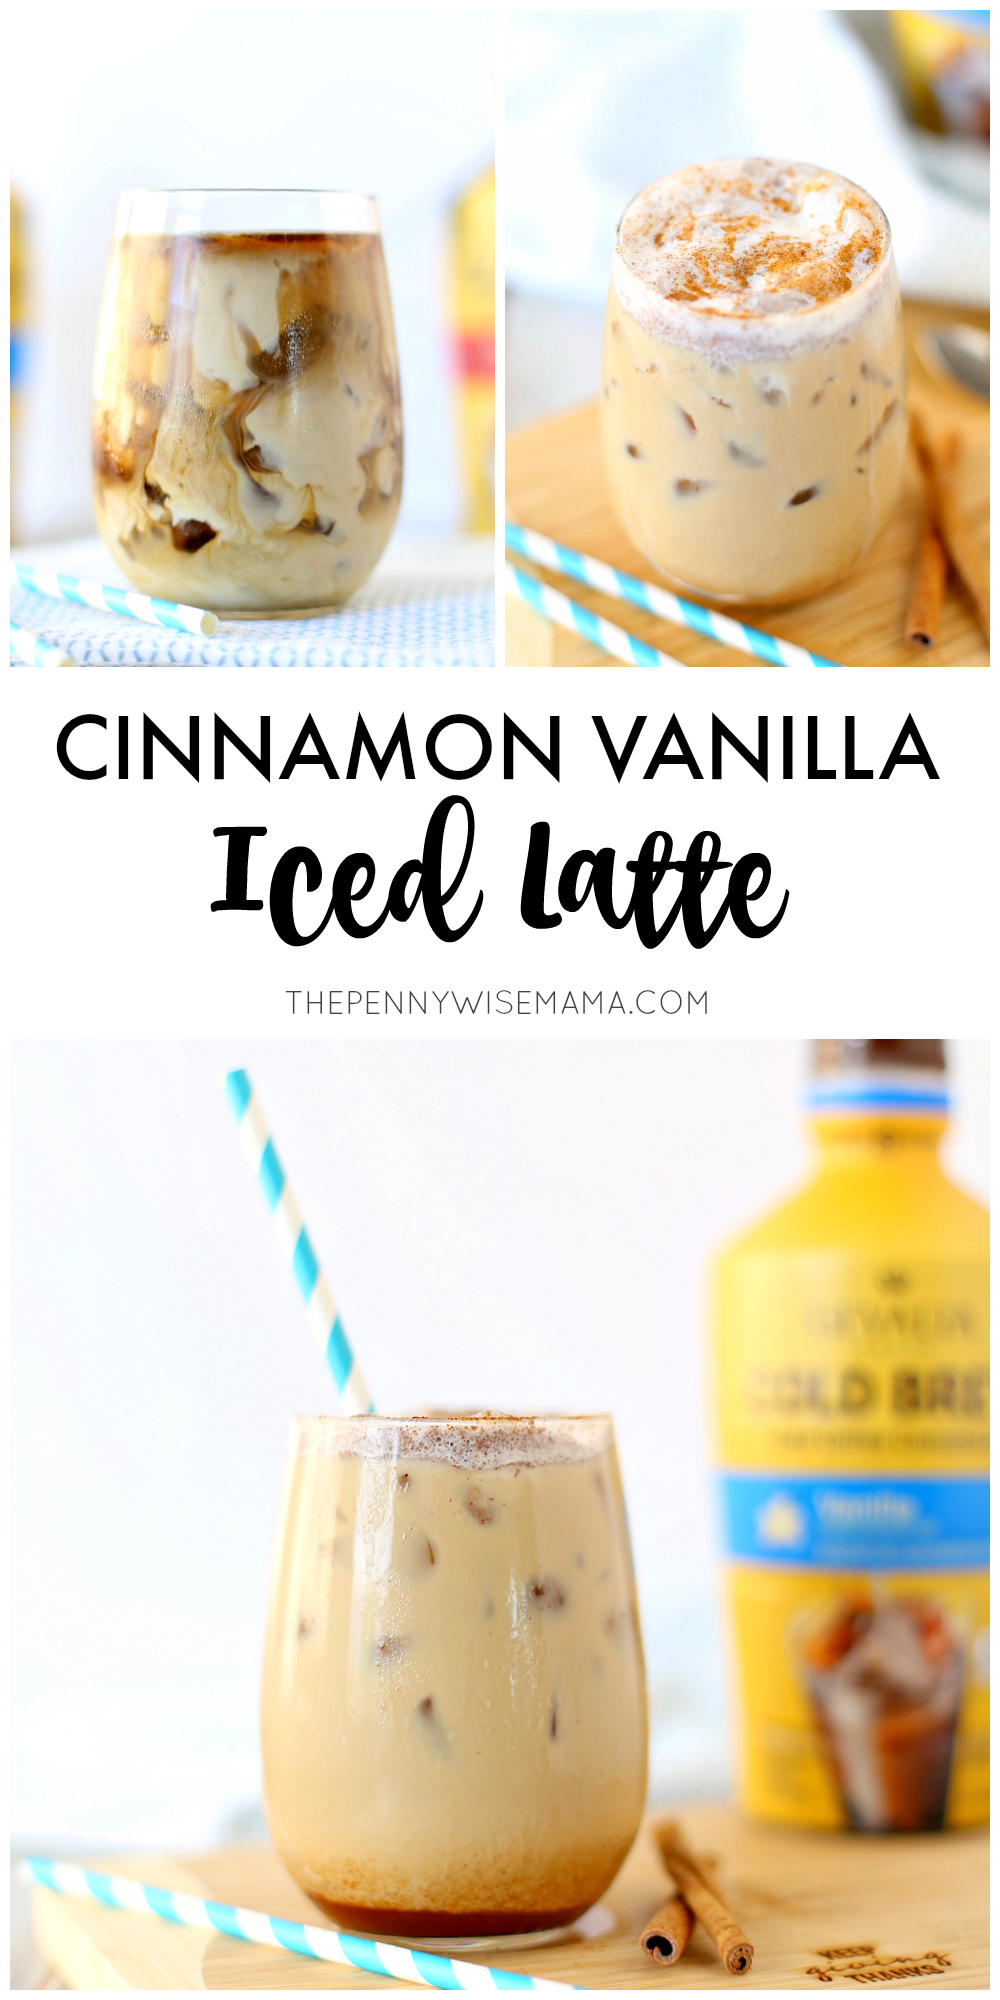 Easy Make-At-Home Cinnamon Vanilla Latte Recipe using cold brew coffee